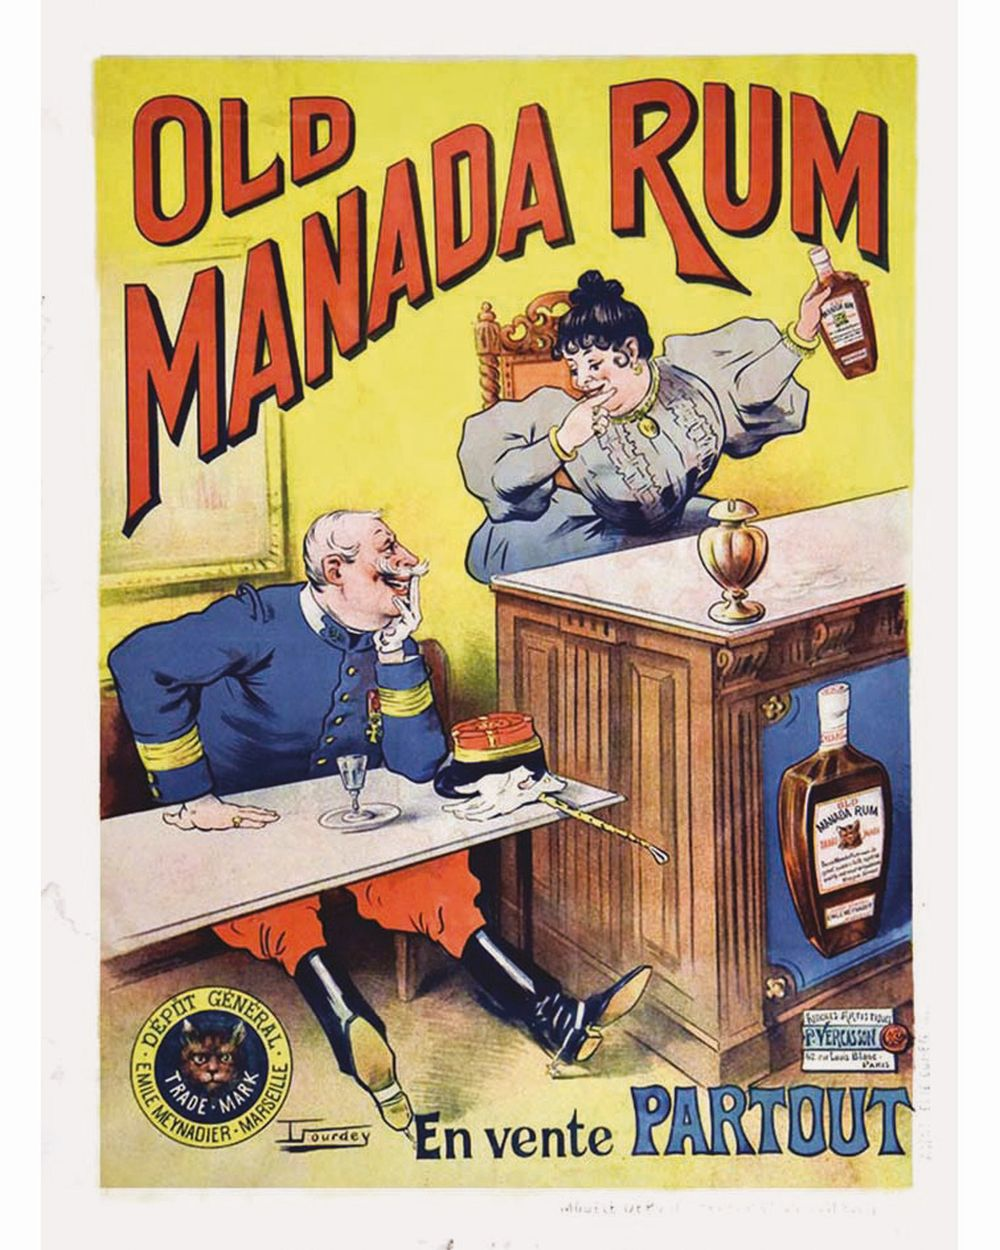 Sold Price Sourdey T Old Manada Rum Dépôt Légal Emile Meynadier Vers 1900 Marseille Bouches Du Rhône June 5 0119 2 00 Pm Cest Rum Comic Book Cover Olds